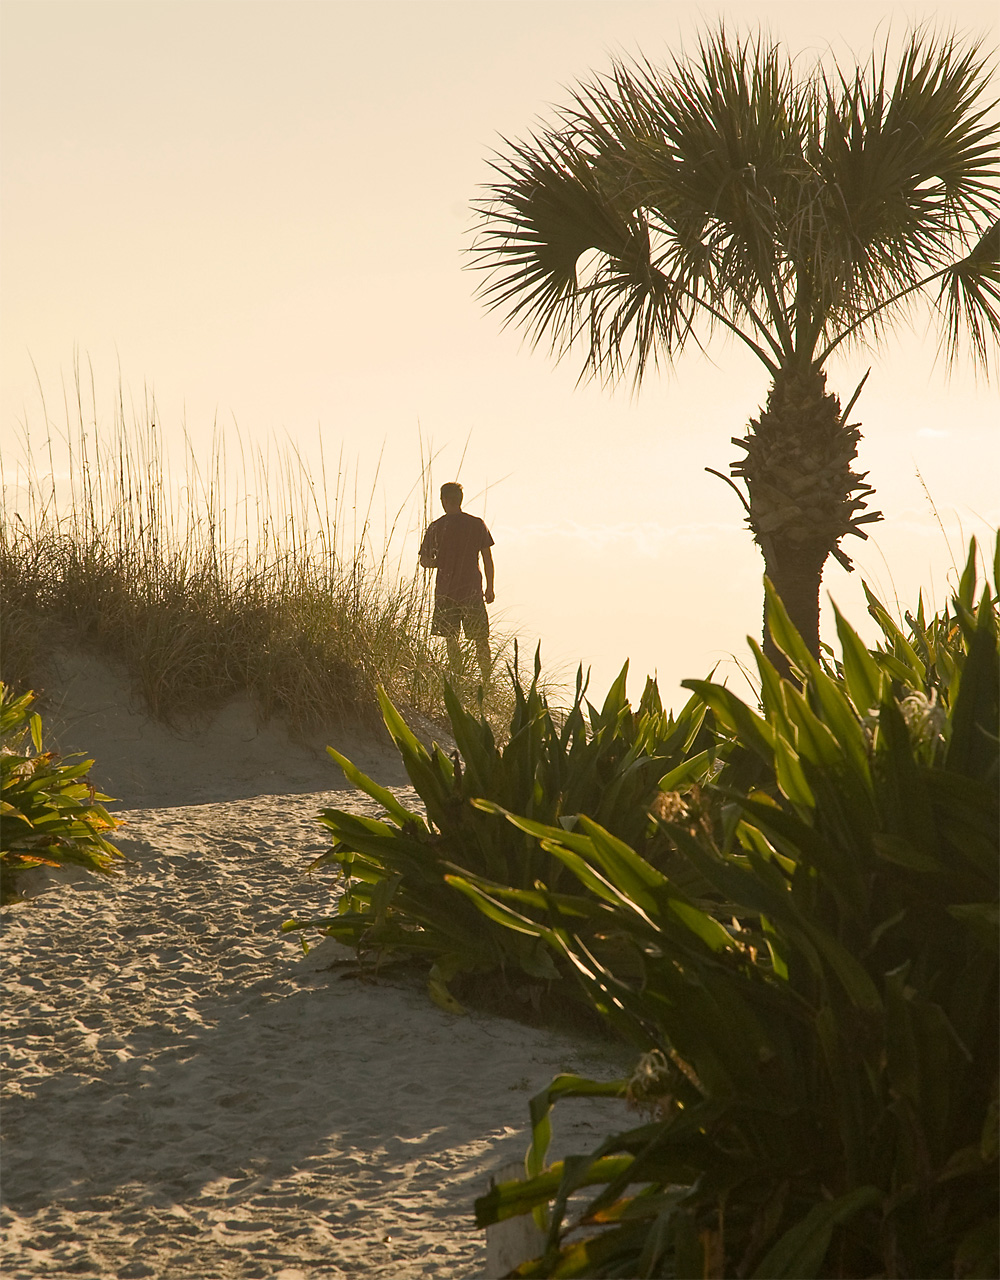 Man walking on st augustine beach